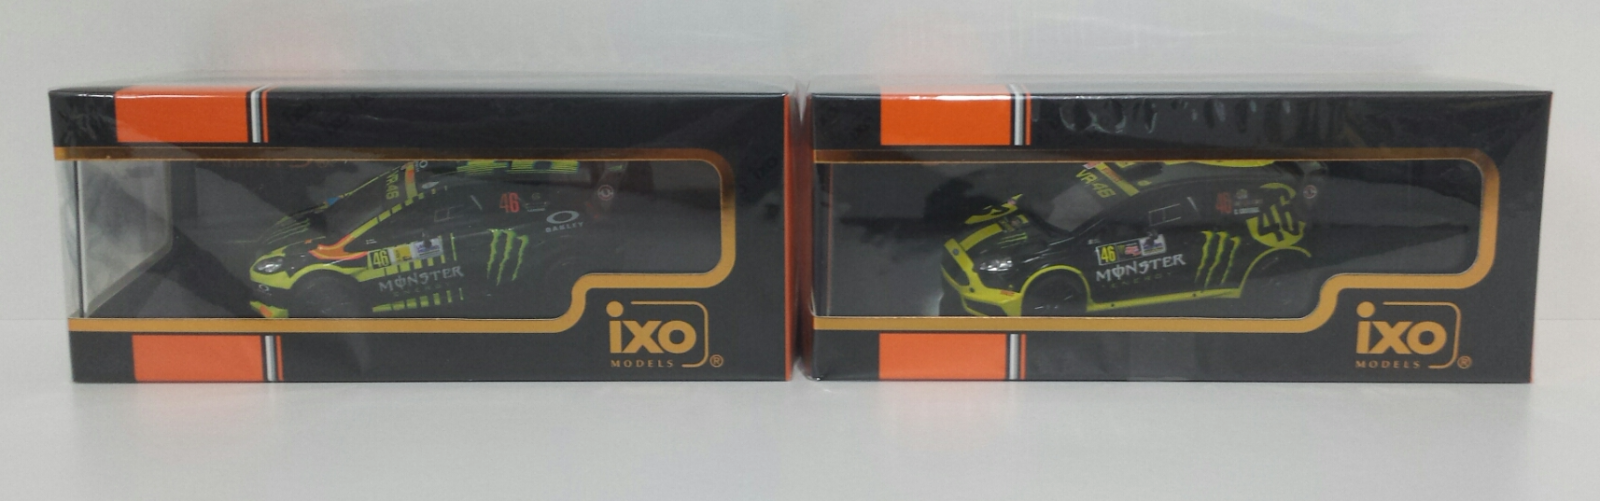 IXO 1/43 VALENTINO ROSSI  46 SET FORD FIESTA RS WRC MONZA RALLY SHOW 2013 - 2014